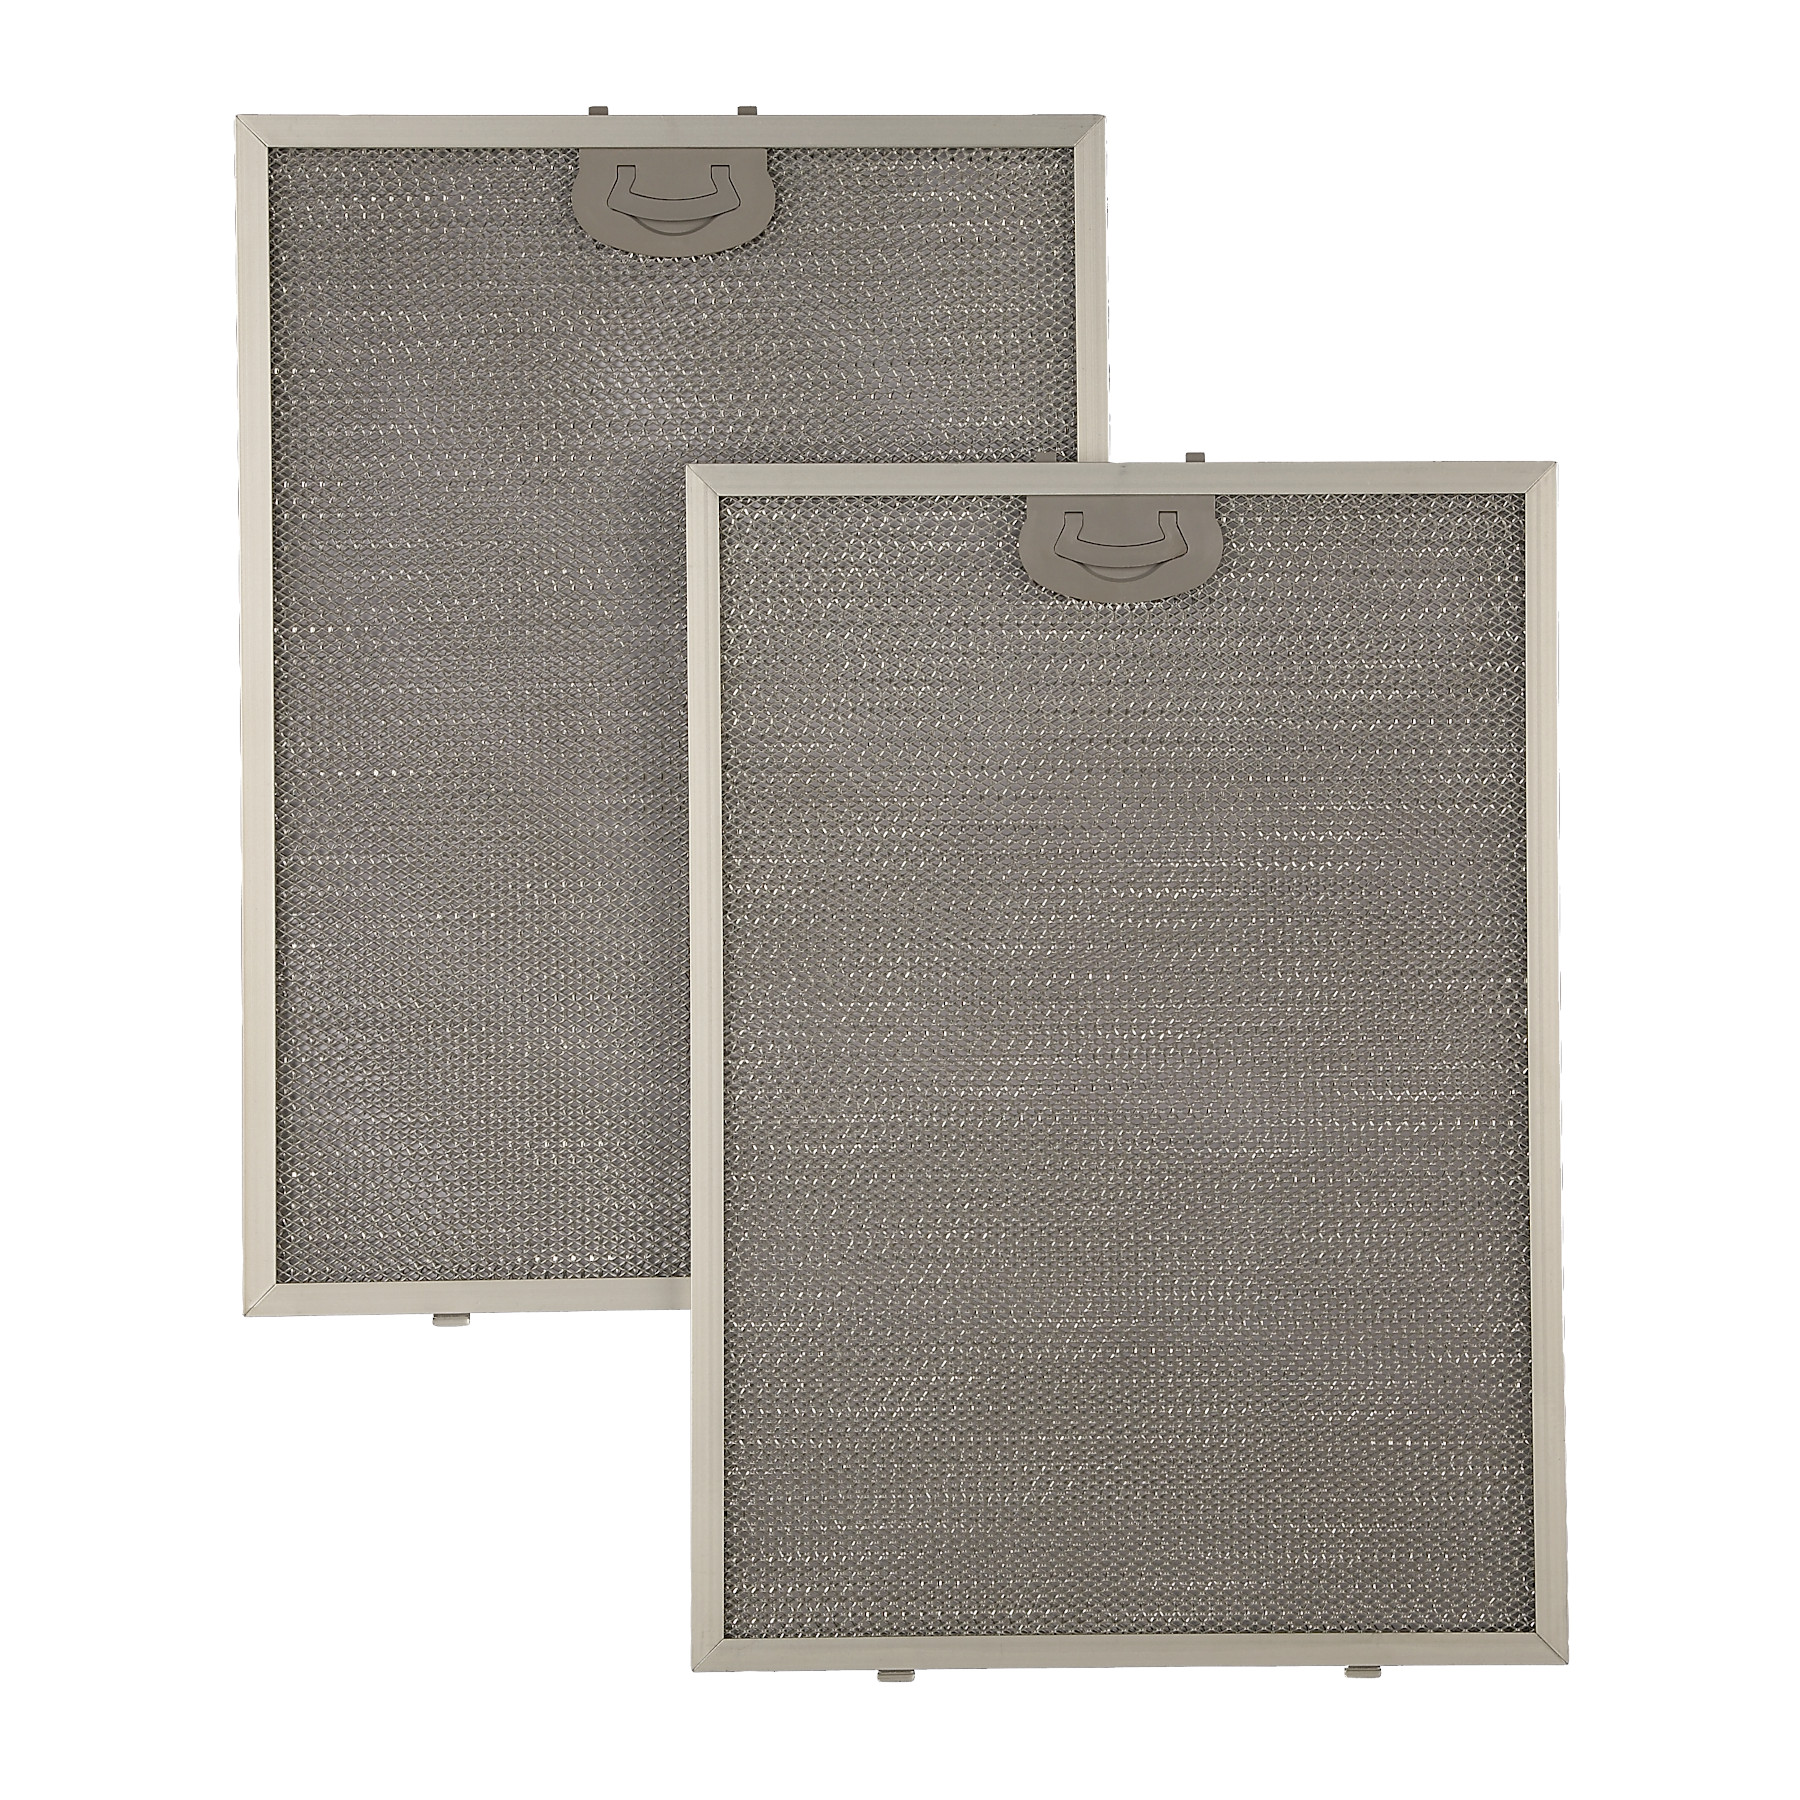 Aluminum Replacement Grease Filter with Antimicrobial Protection for 30-Inch QP1 Series